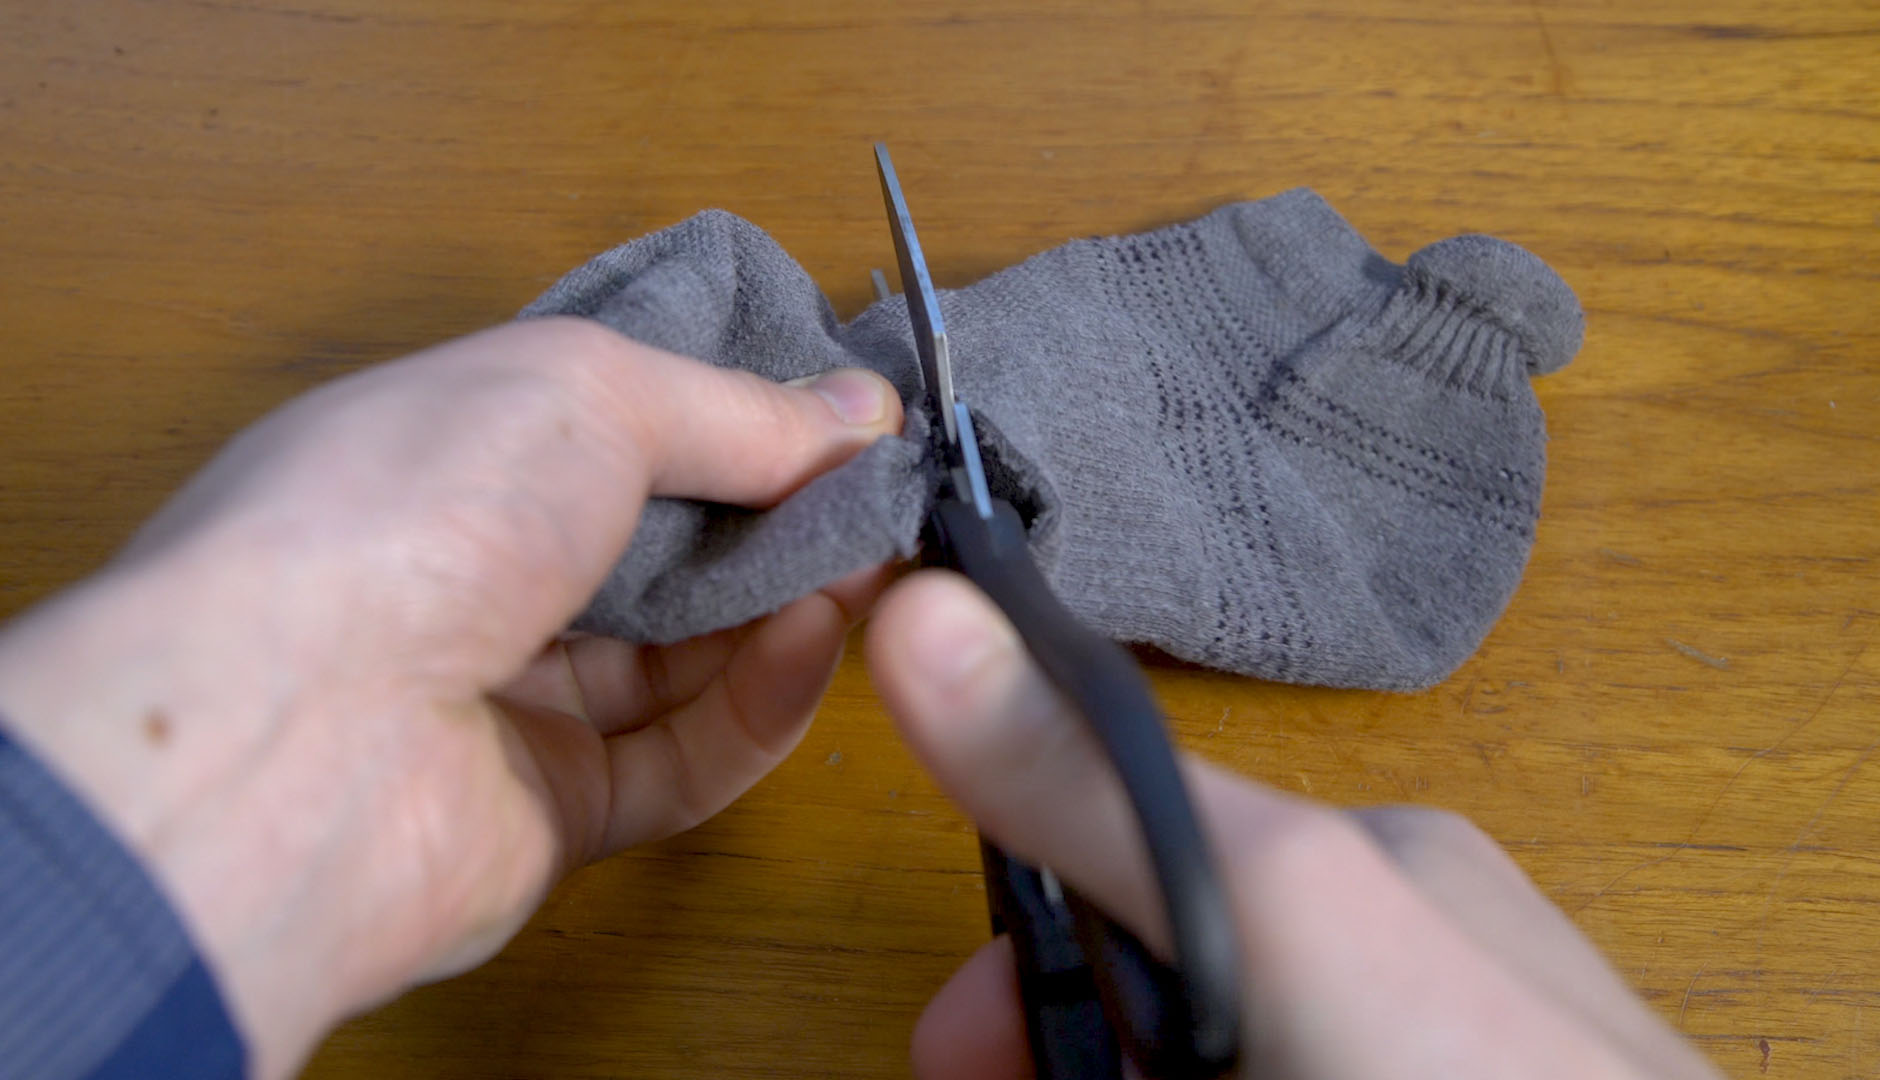 hands cutting off end of the sock